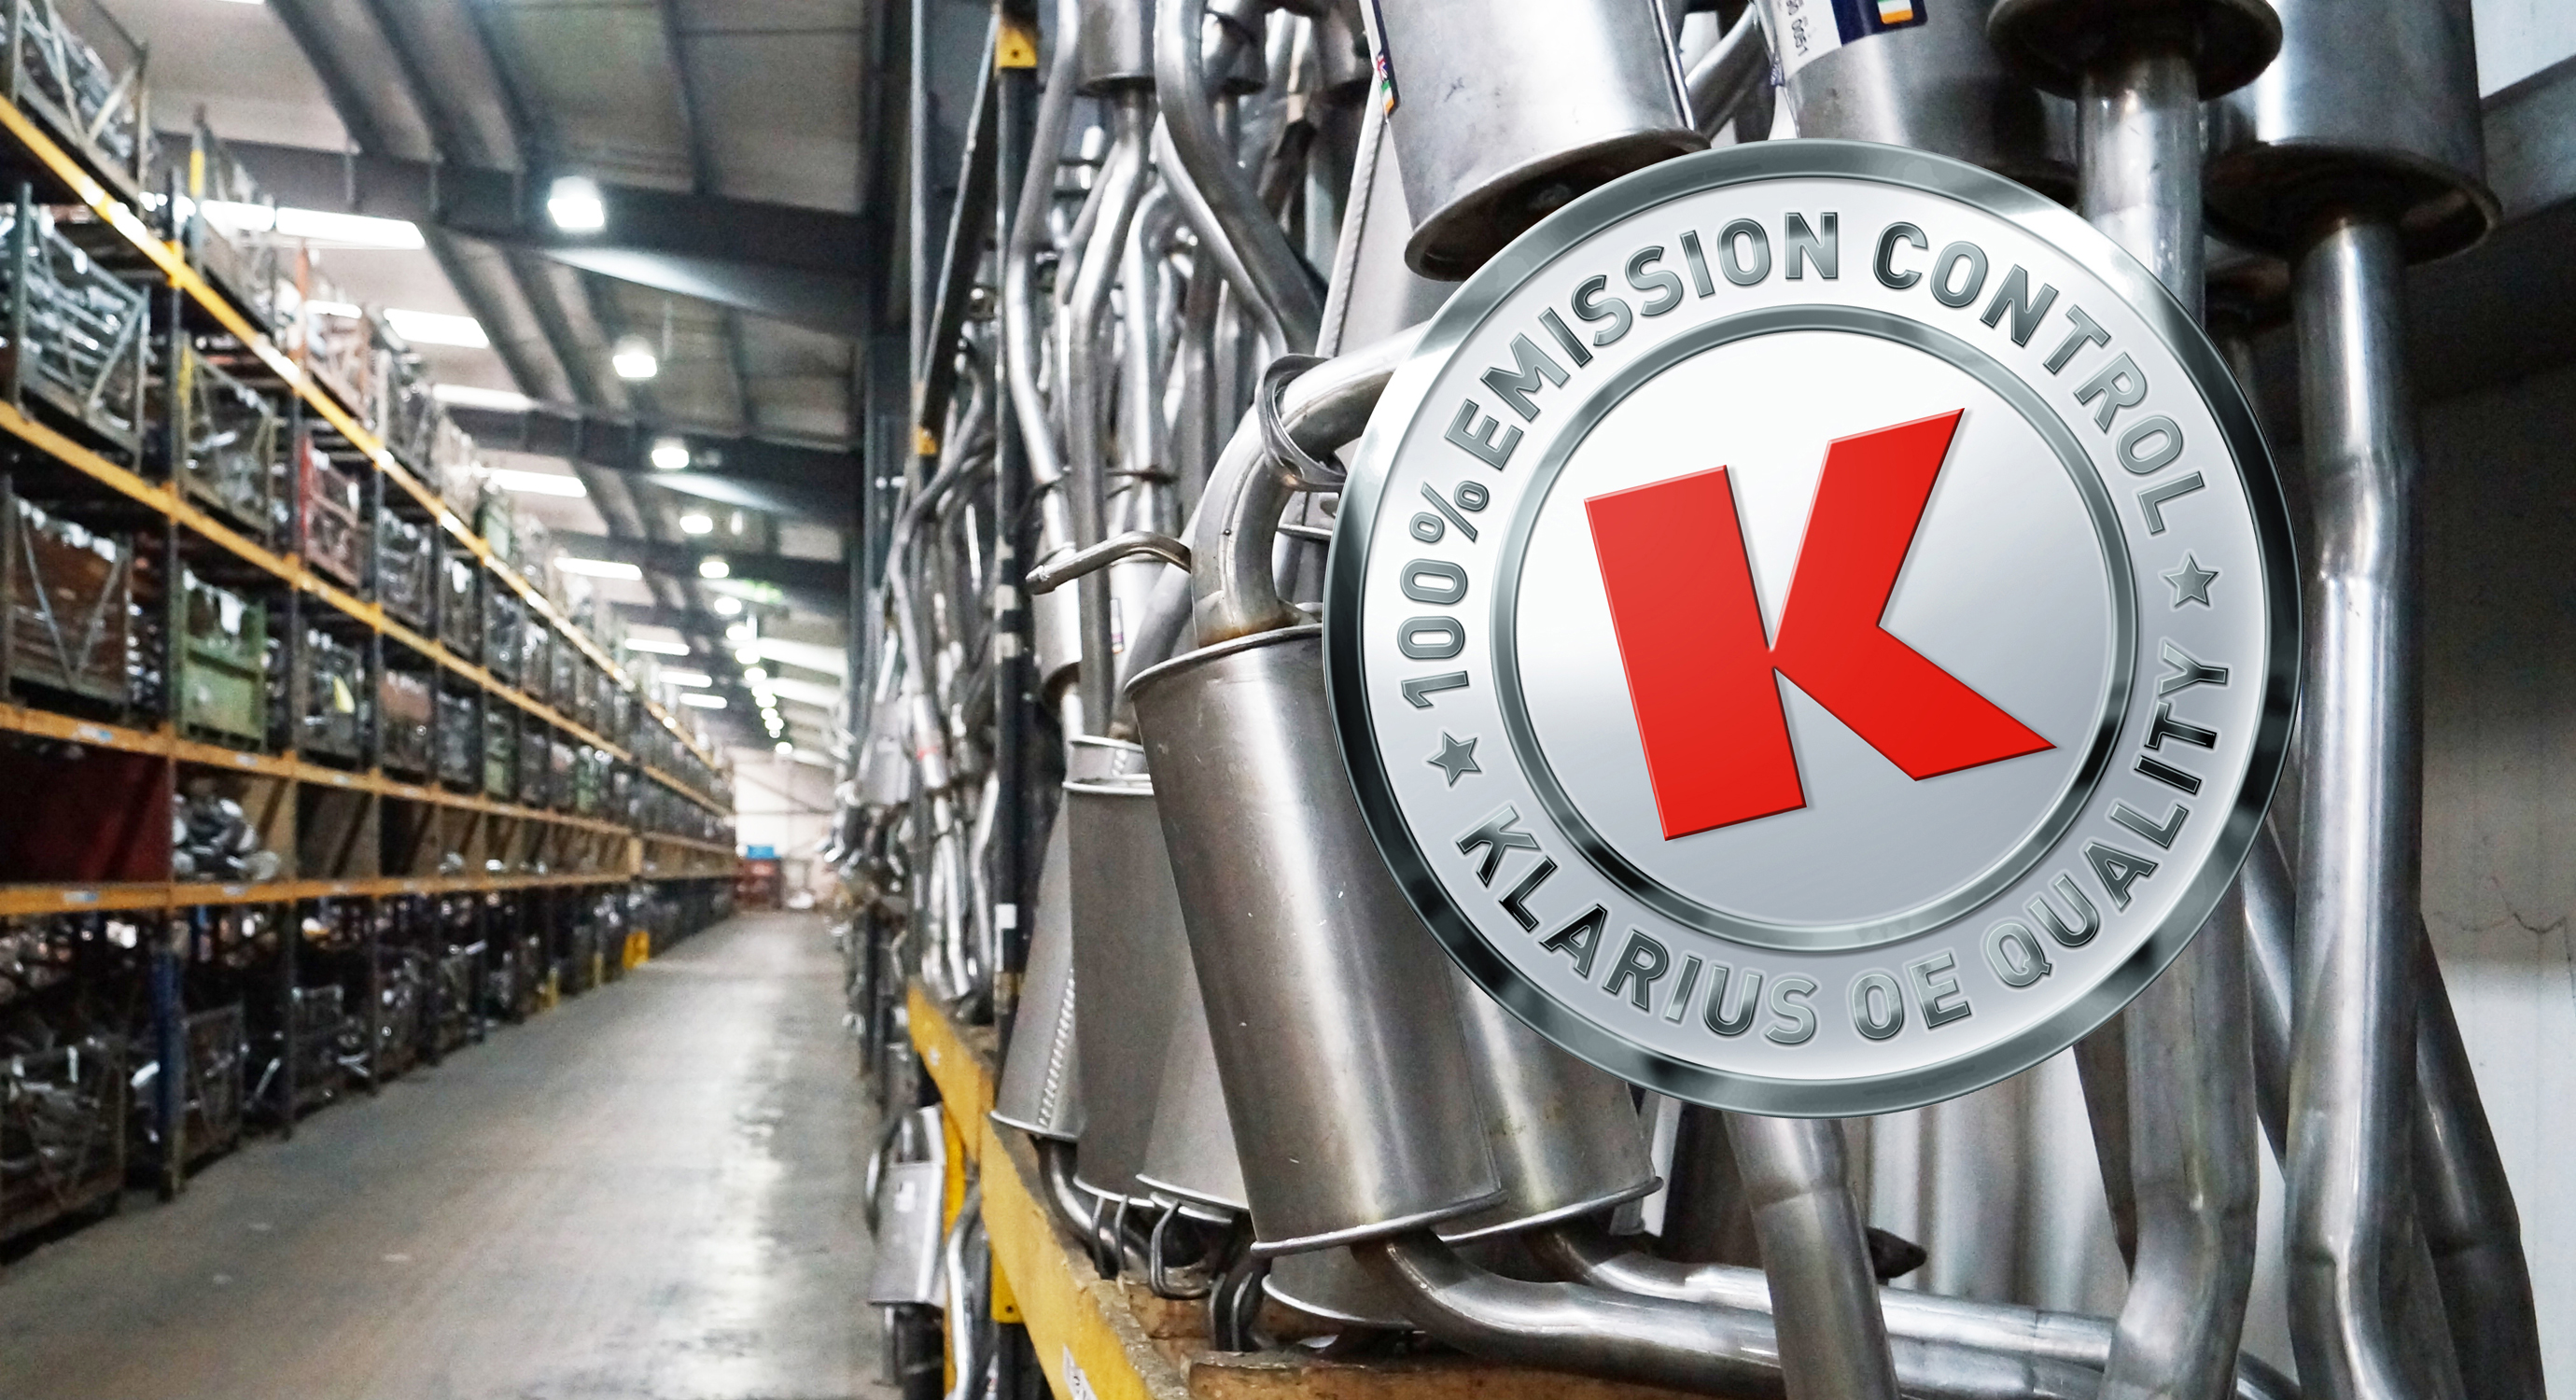 Klarius Products Ltd leads the way with ISO 9001:2015 accreditation